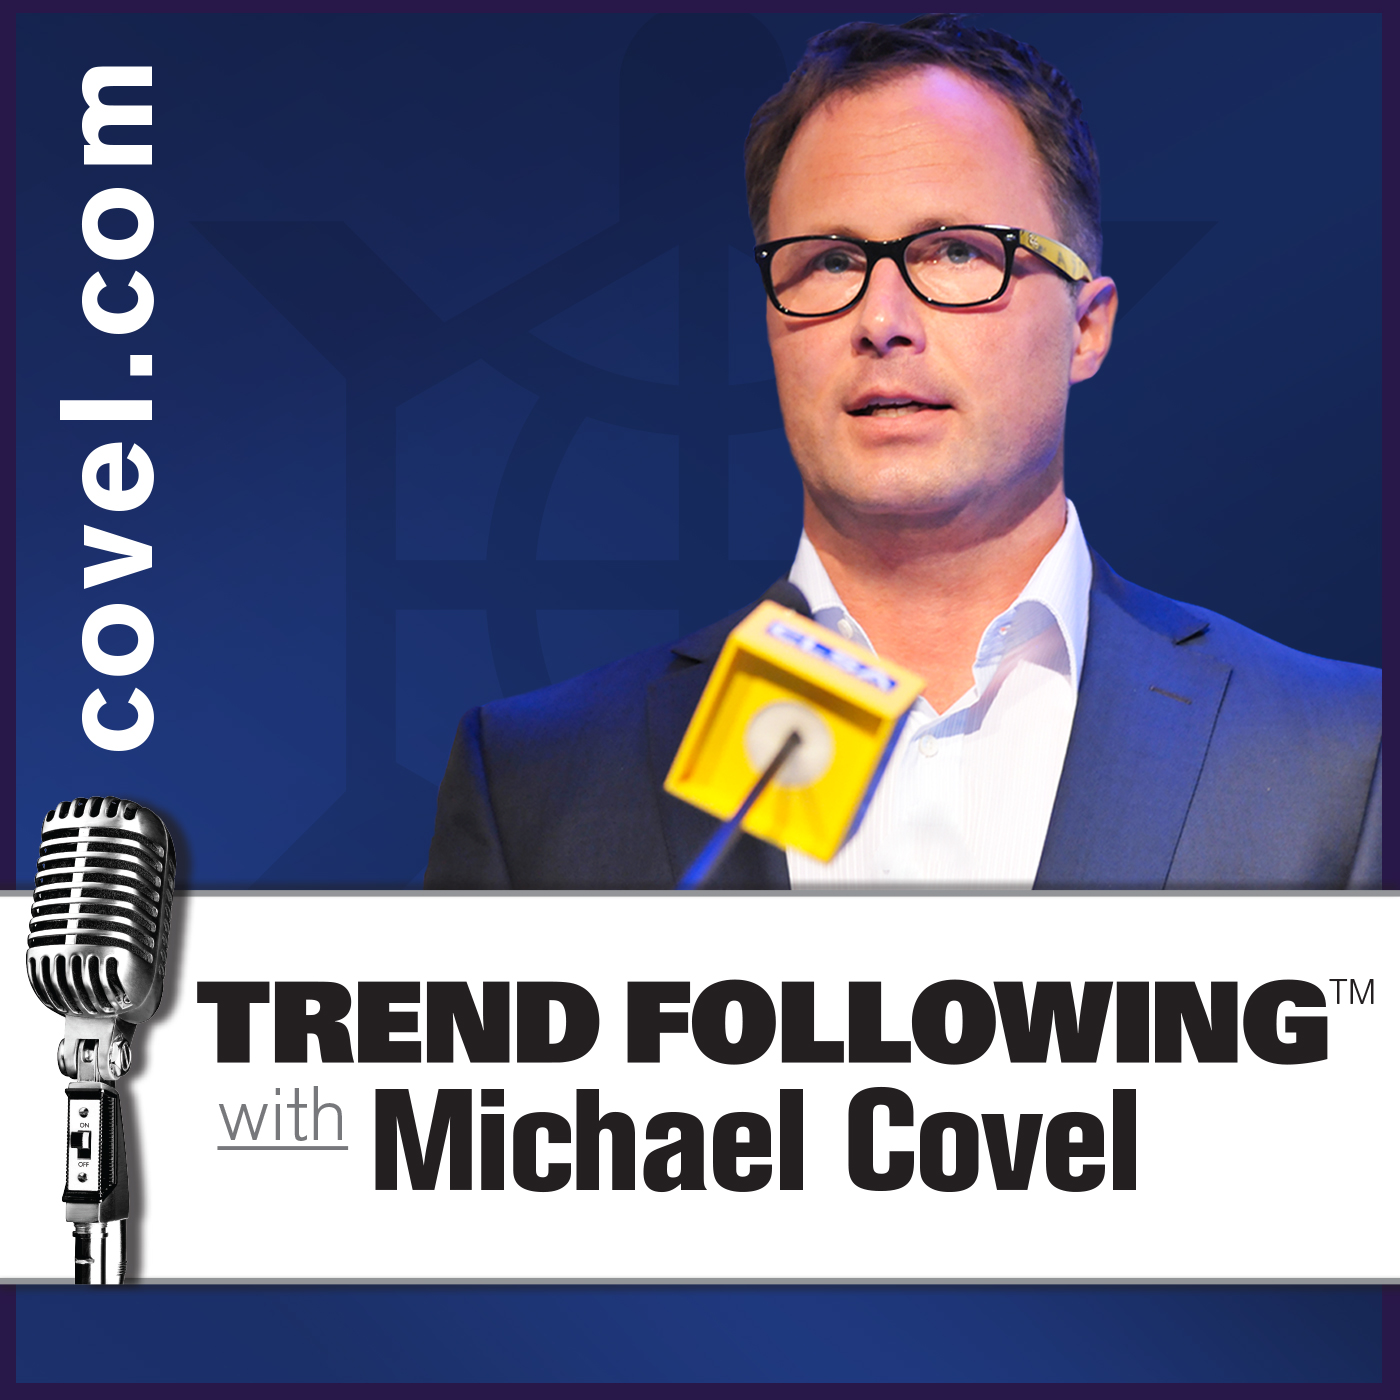 Ep. 497: David Stockman Interview #2 with Michael Covel on Trend Following Radio